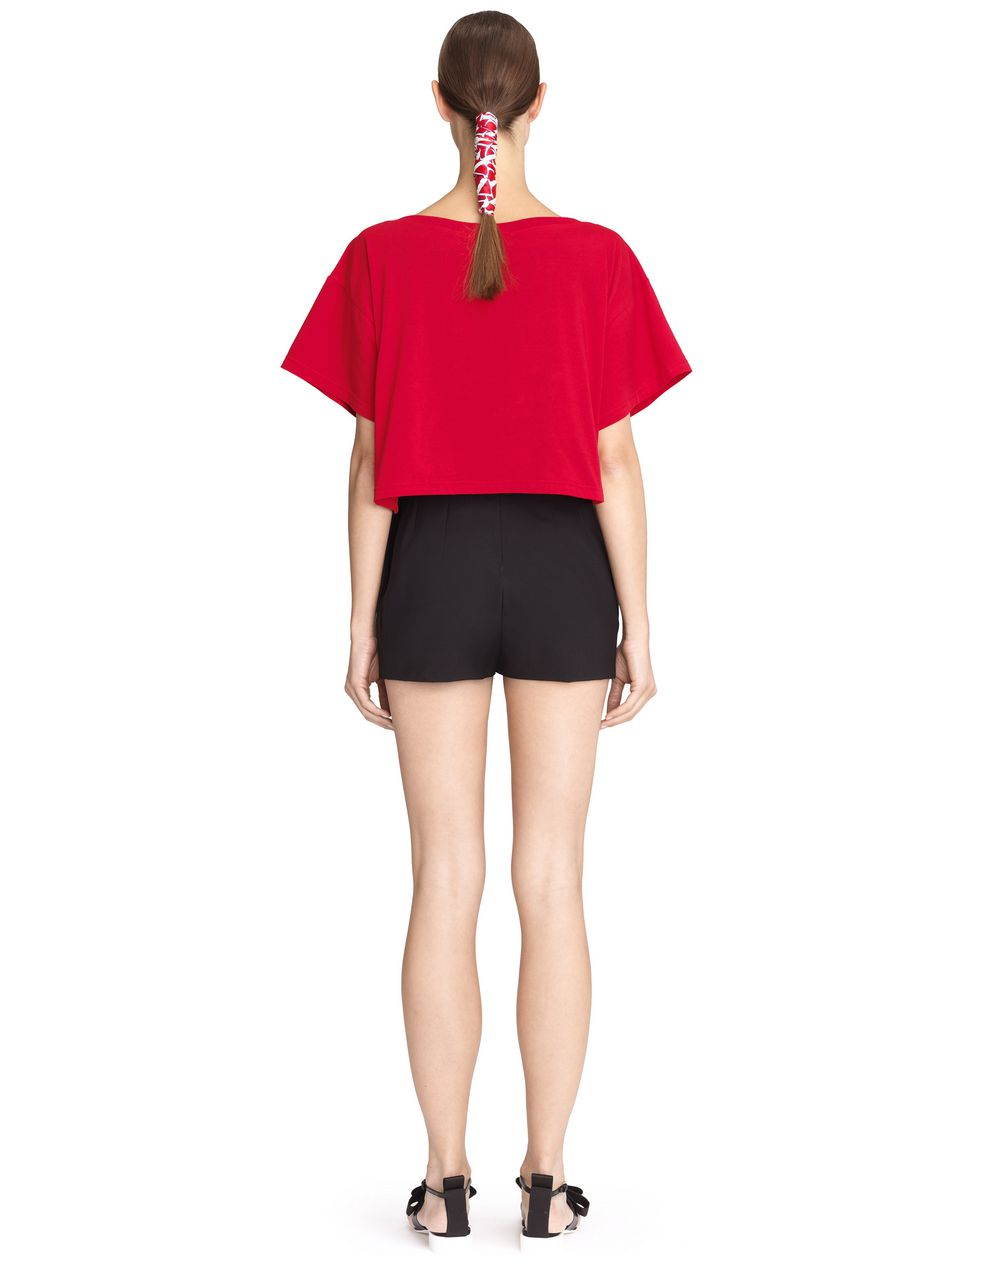 lanvin lanvin logo cropped t shirt top women